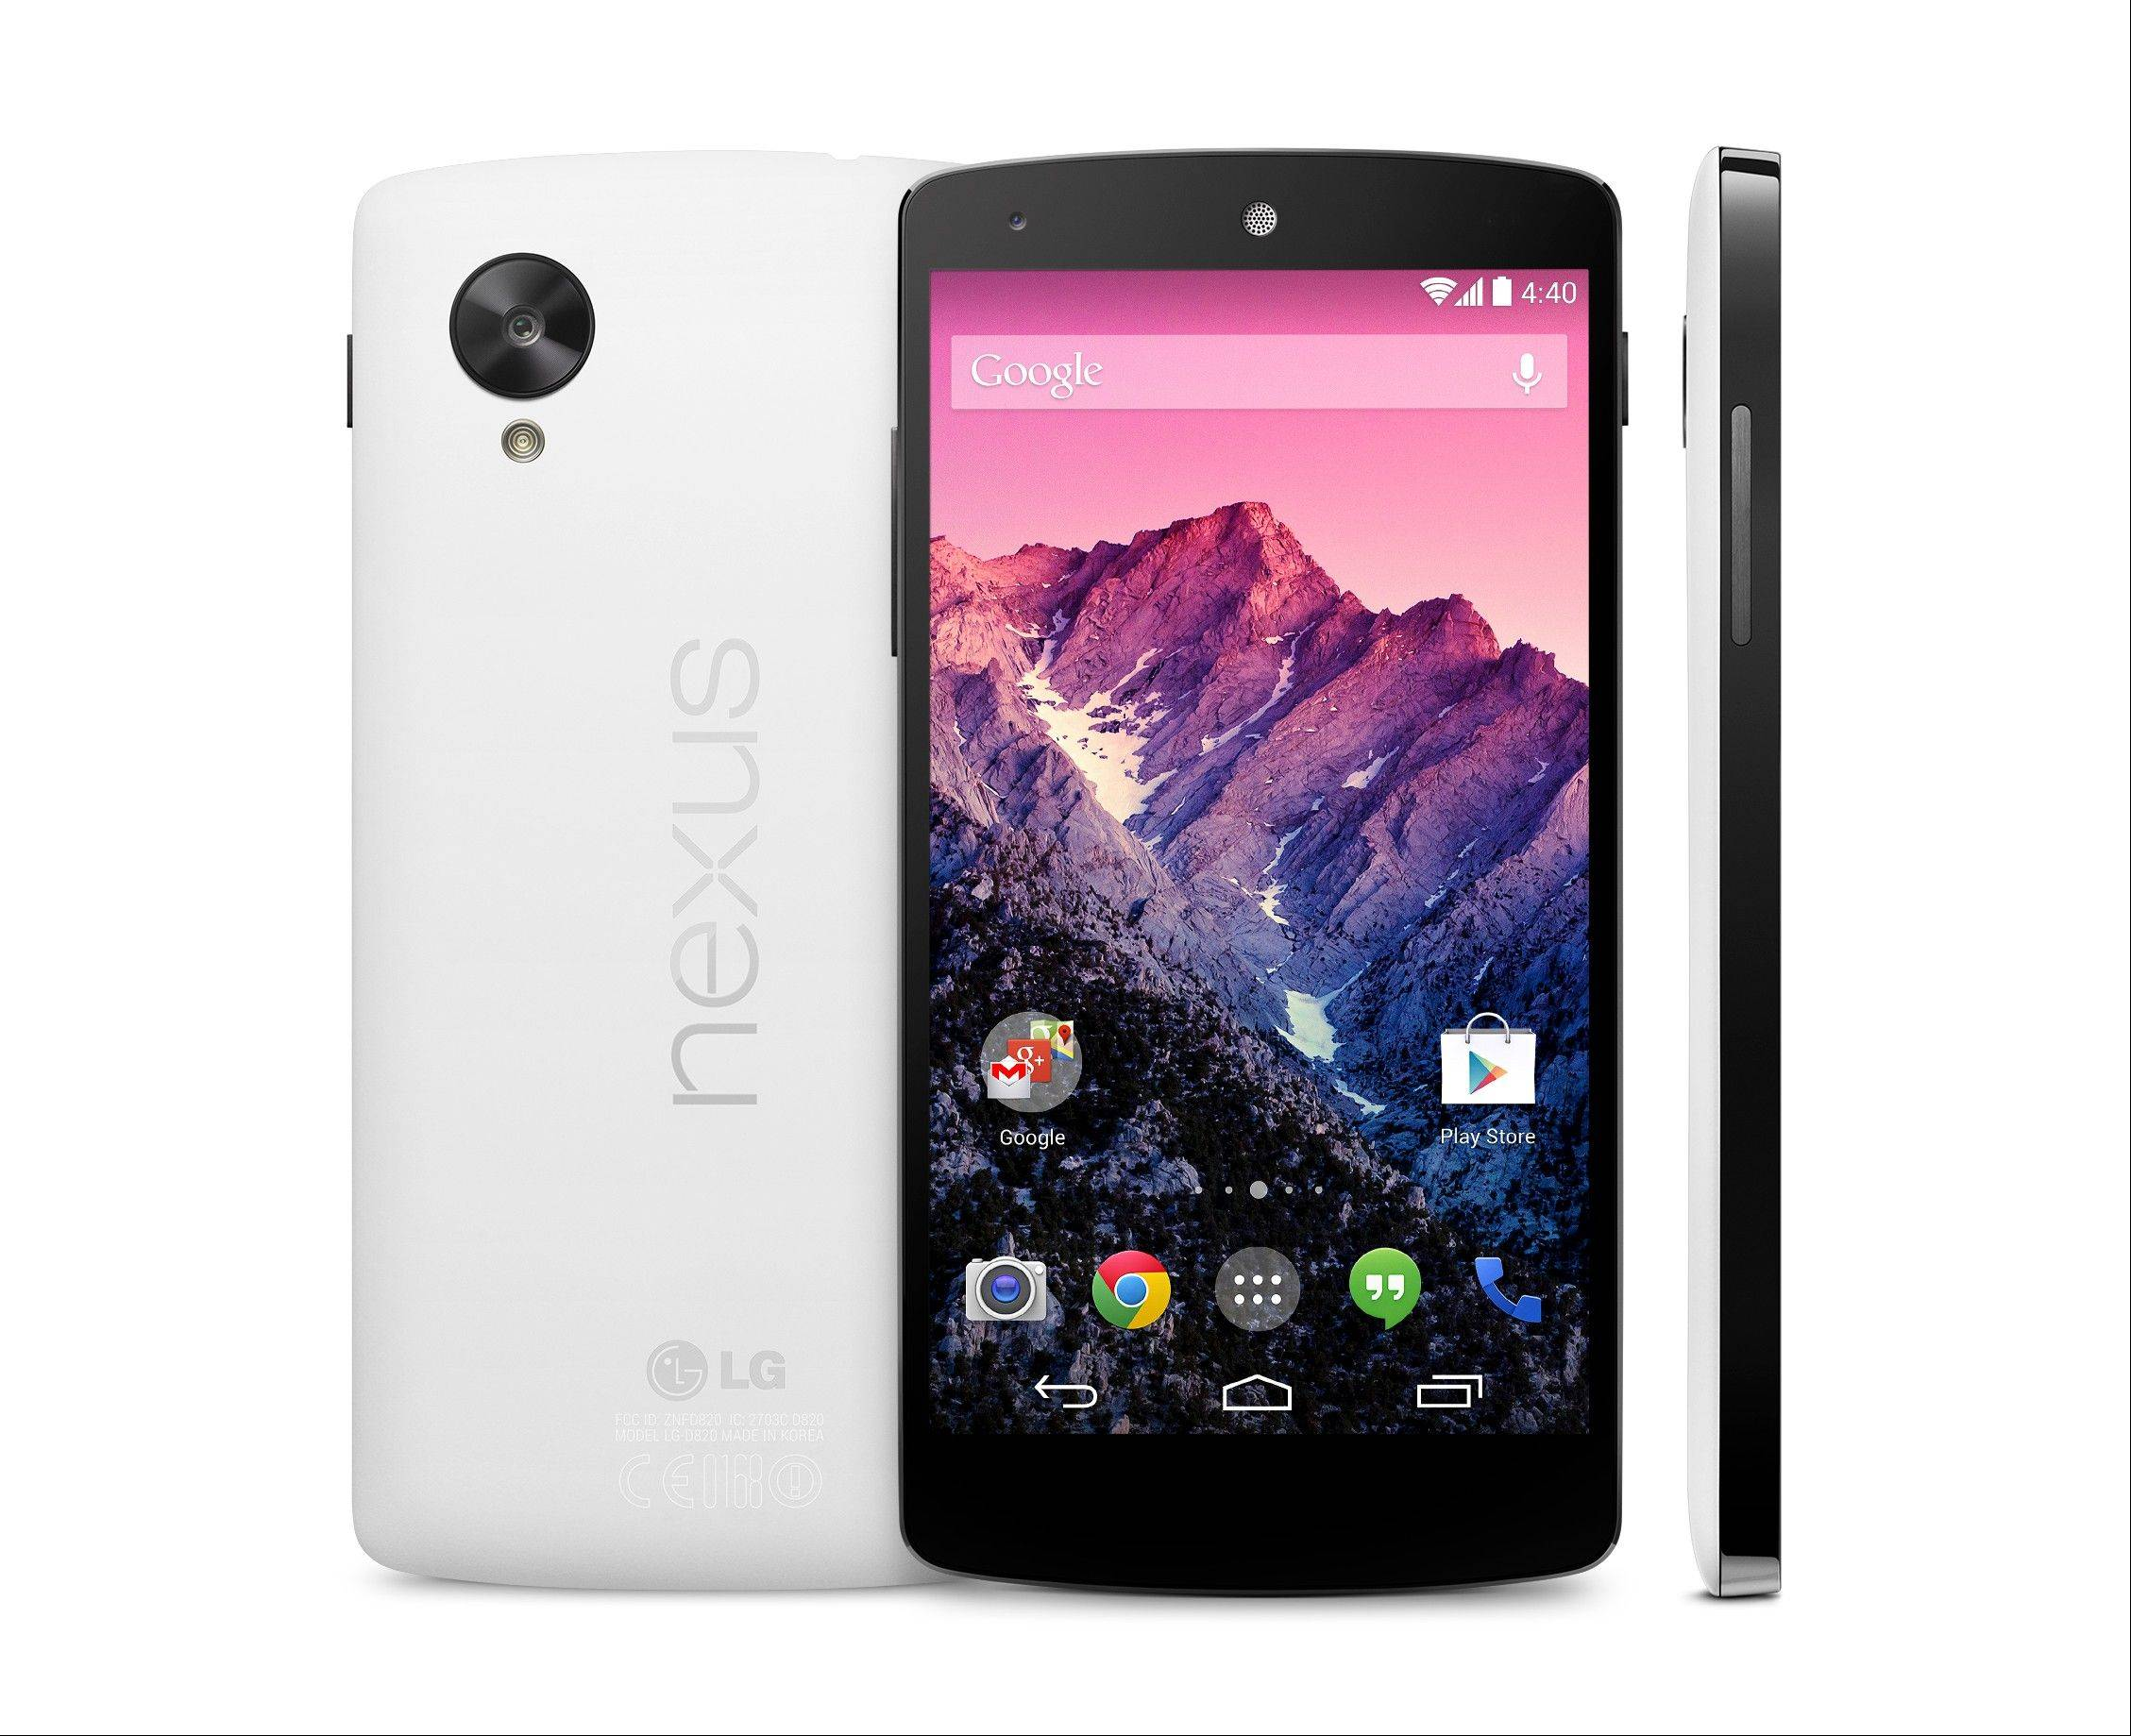 This image provided by Google shows its new Nexus 5 phone, which was unveiled Thursday, Oct. 31, 2013. The Nexus 5 phone is the first device to run on the latest version of Google's Android operating system, nicknamed after the Kit Kat candy bar. The phone and software are designed to learn and anticipate a person�s interest and needs.